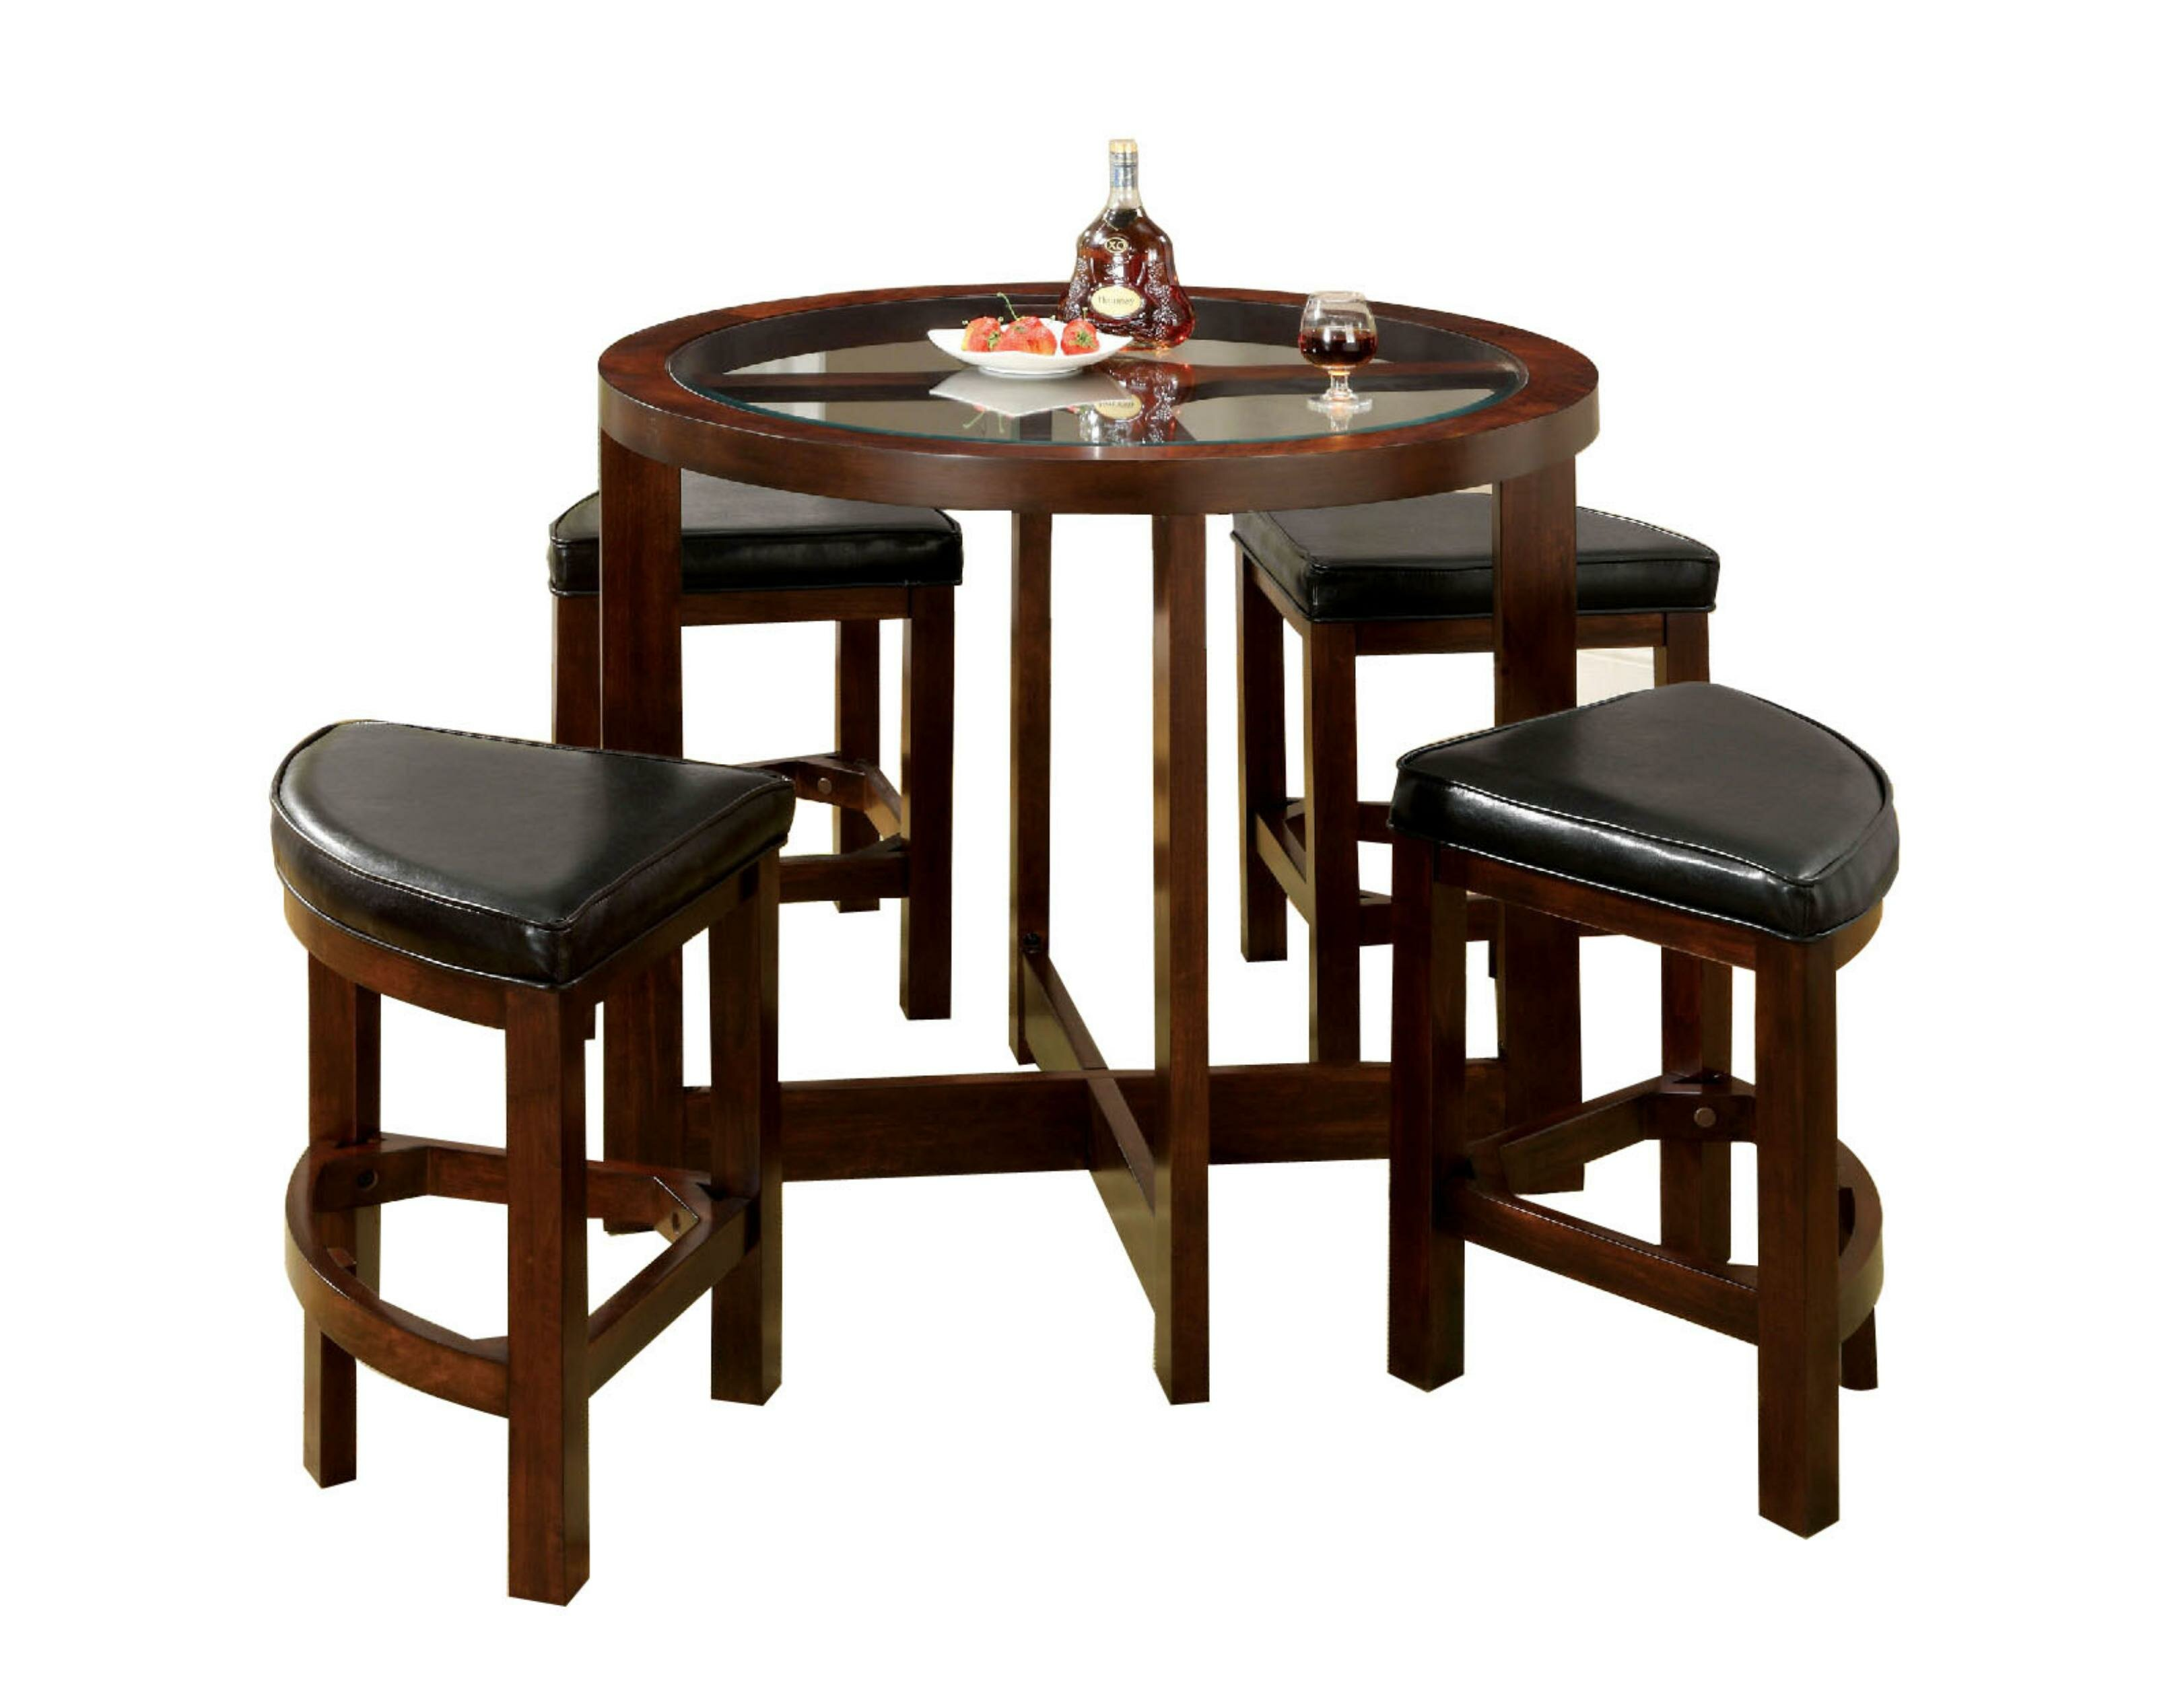 5 Piece Counter Height Dining Table Set